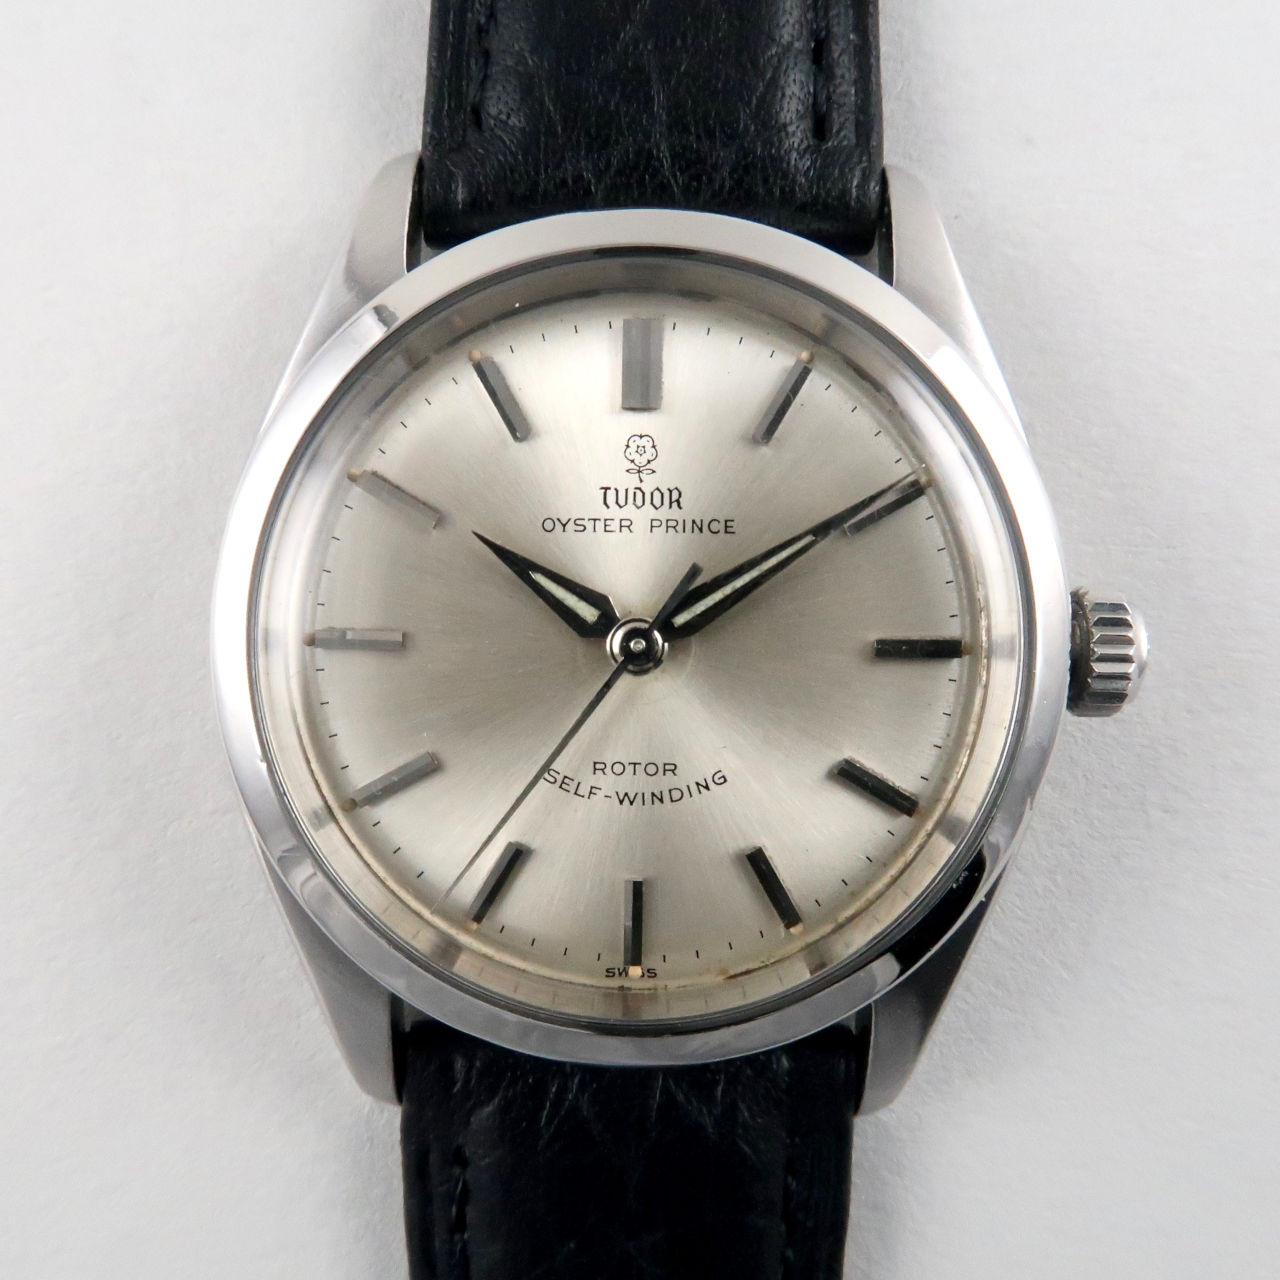 Tudor / Rolex Oyster Prince Ref. 7965 steel vintage wristwatch, dated 1960